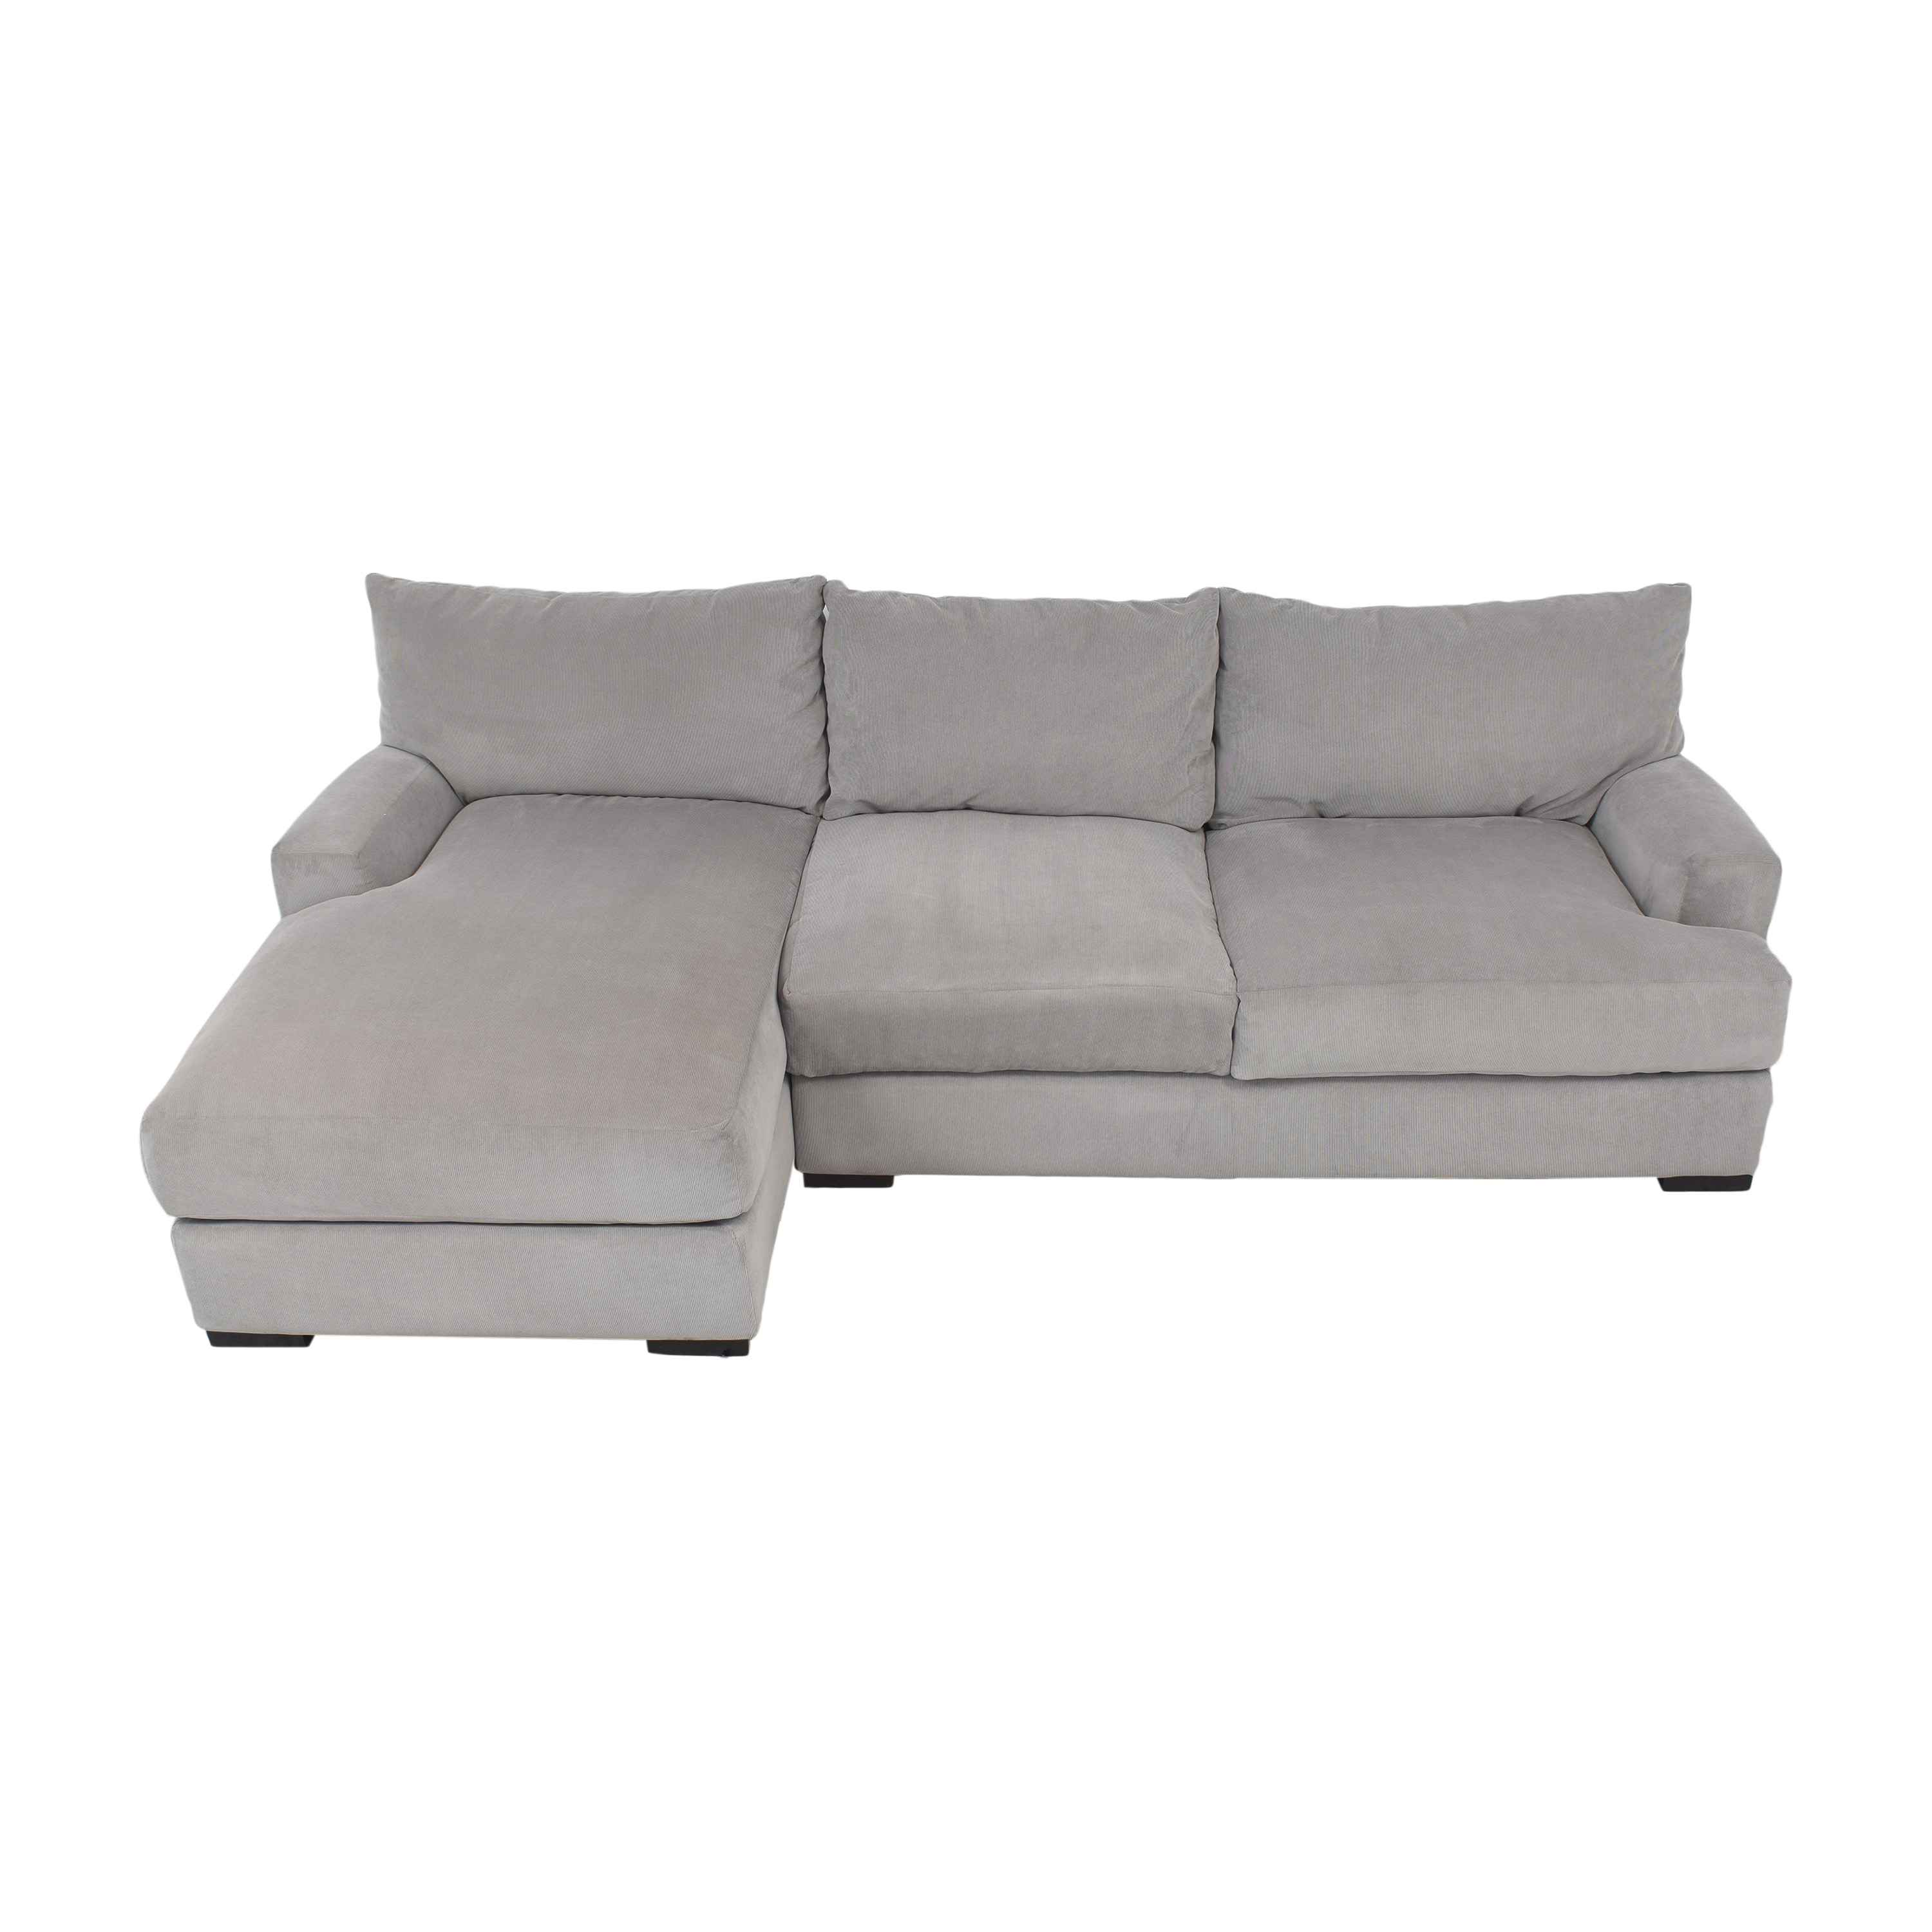 Macy's Macy's Rhyder Chaise Sectional Sofa dimensions